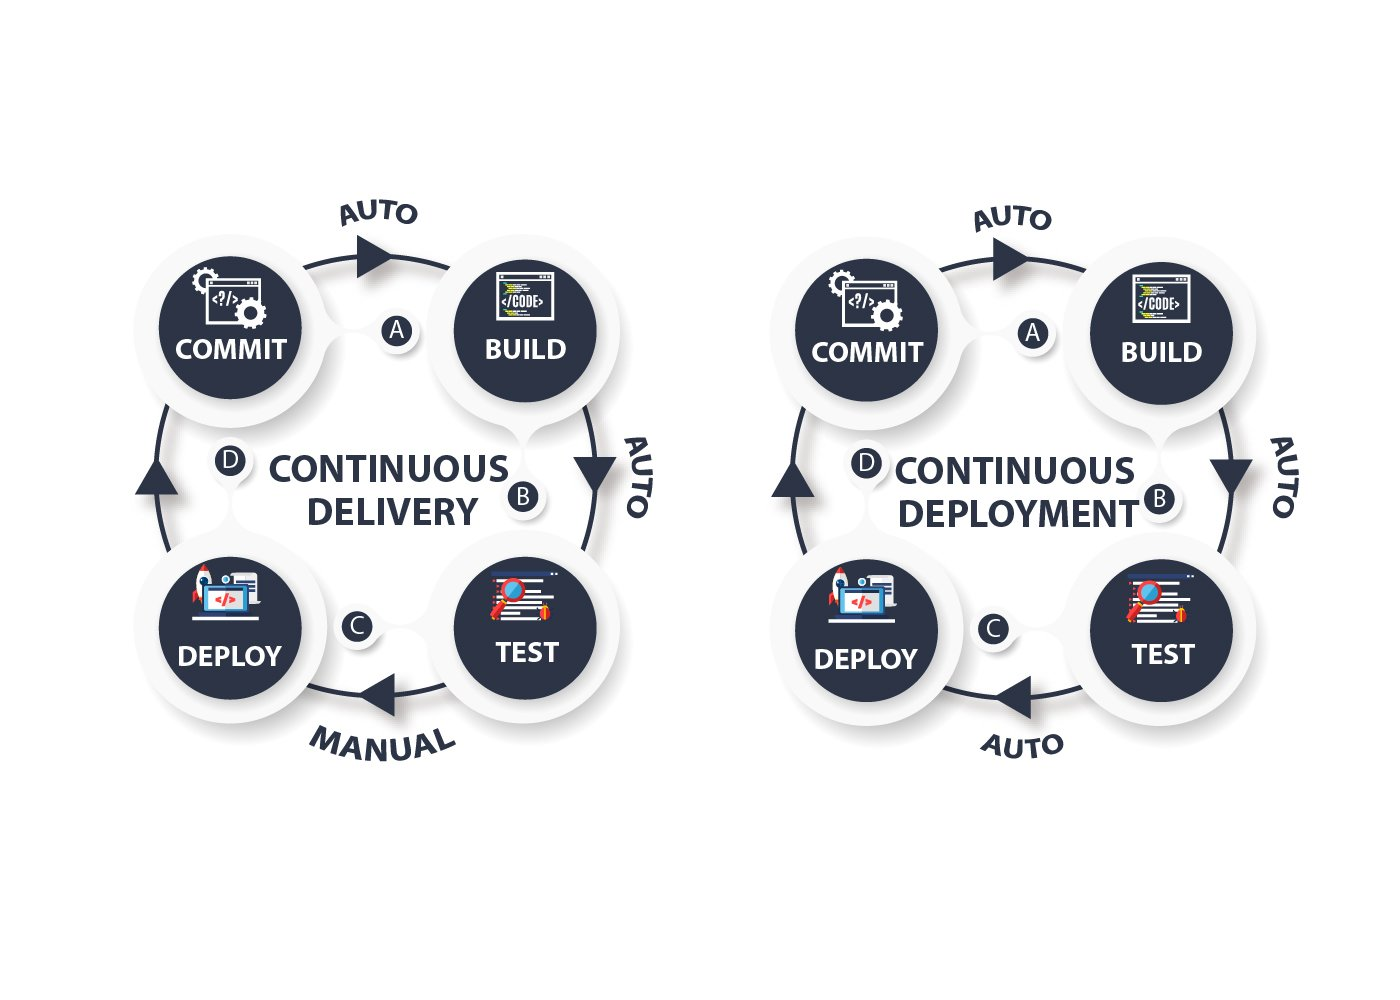 comparison diagrams of continuous delivery and continuous deployment